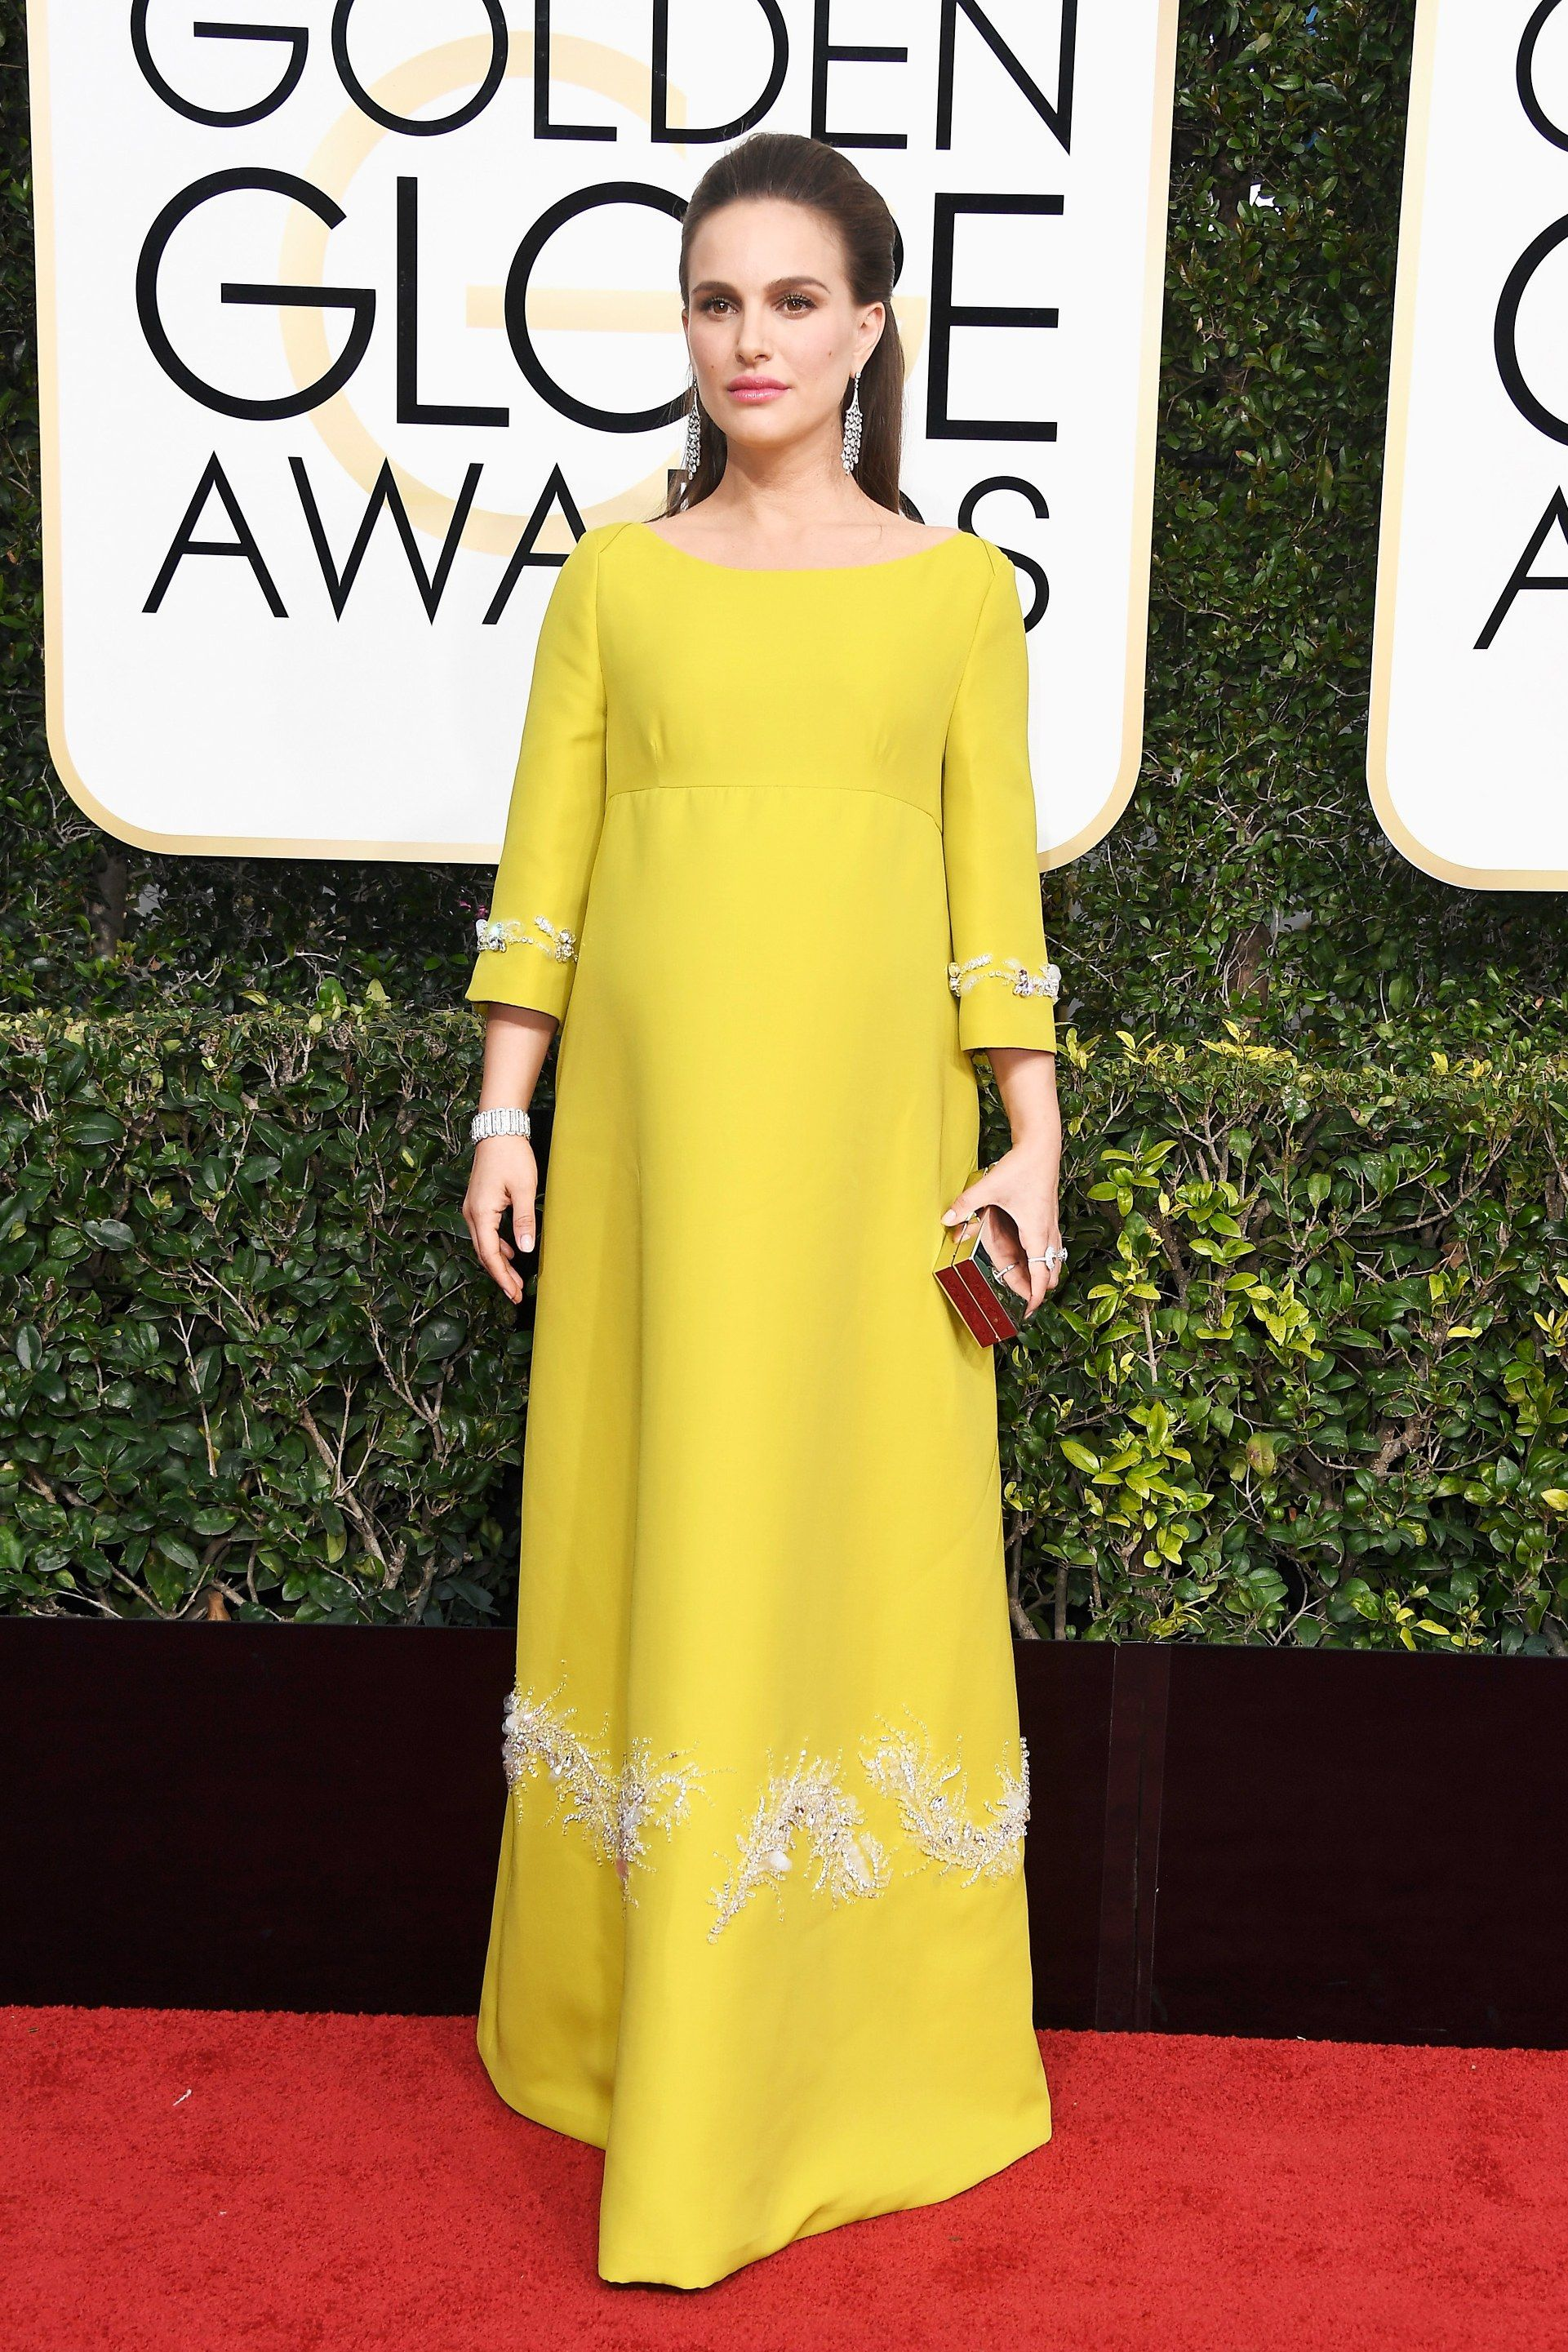 Golden Globes 2017 Red-Carpet Looks